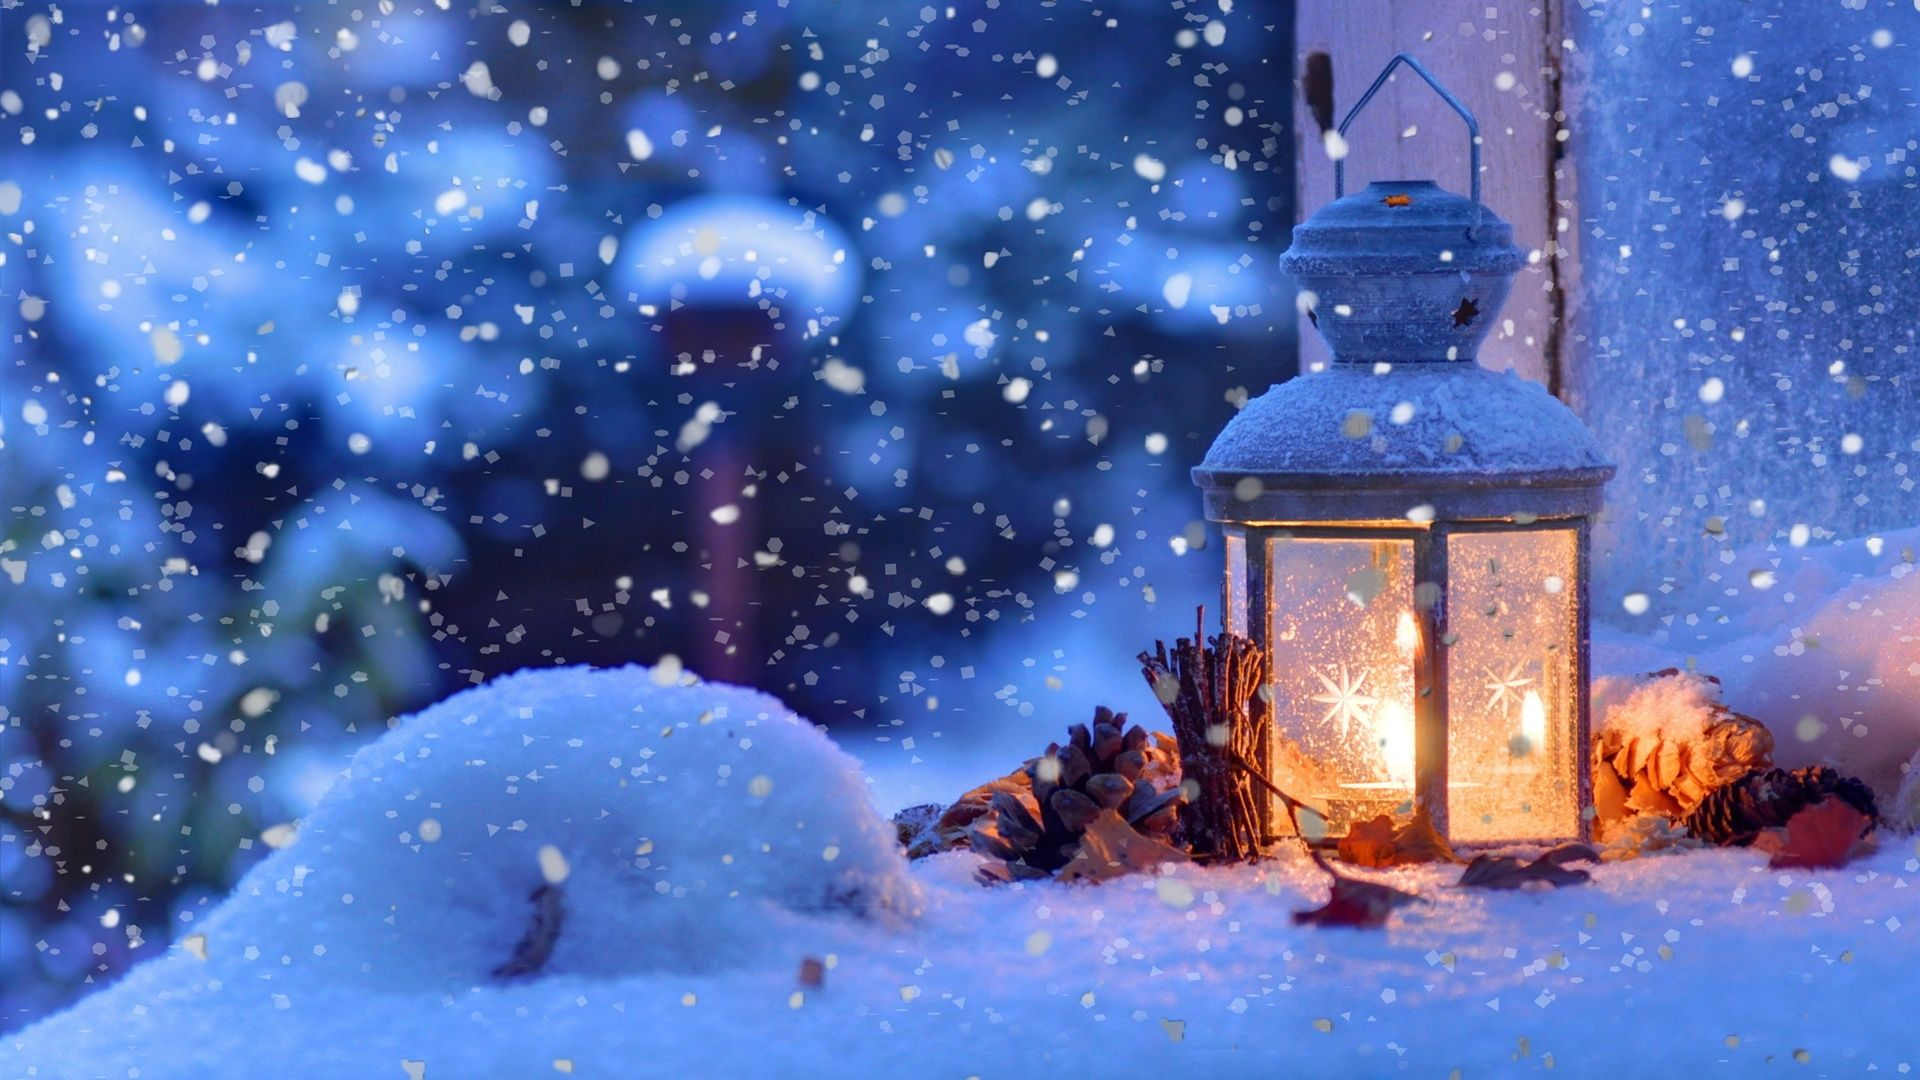 Hd magic winter wallpaper download free - Image For Winter Wallpaper For Android Navcb